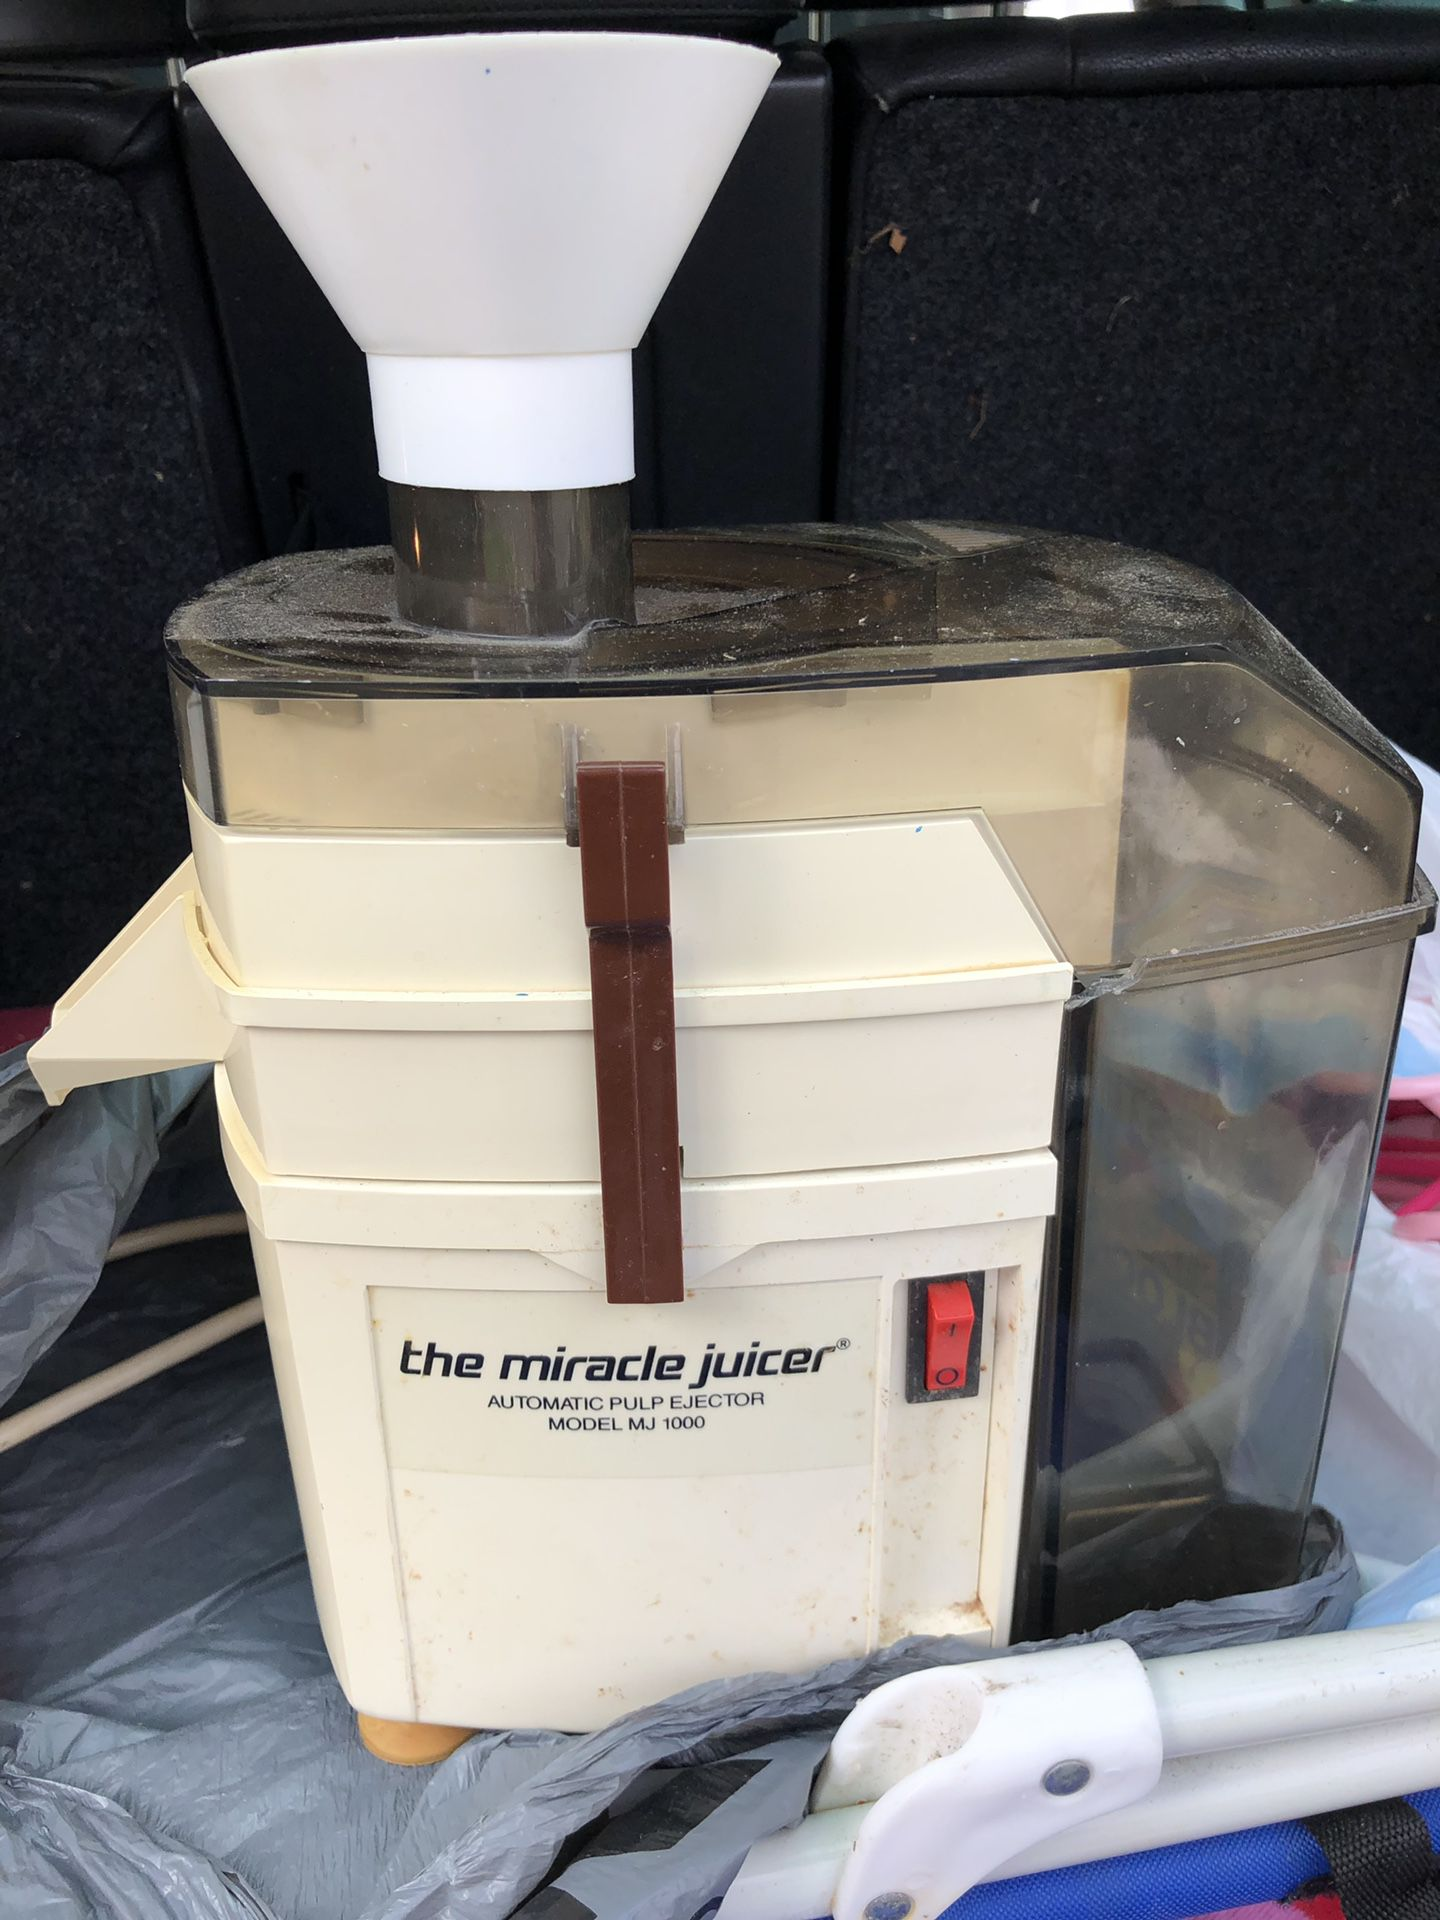 The Miracle Juicer used condition was in storage